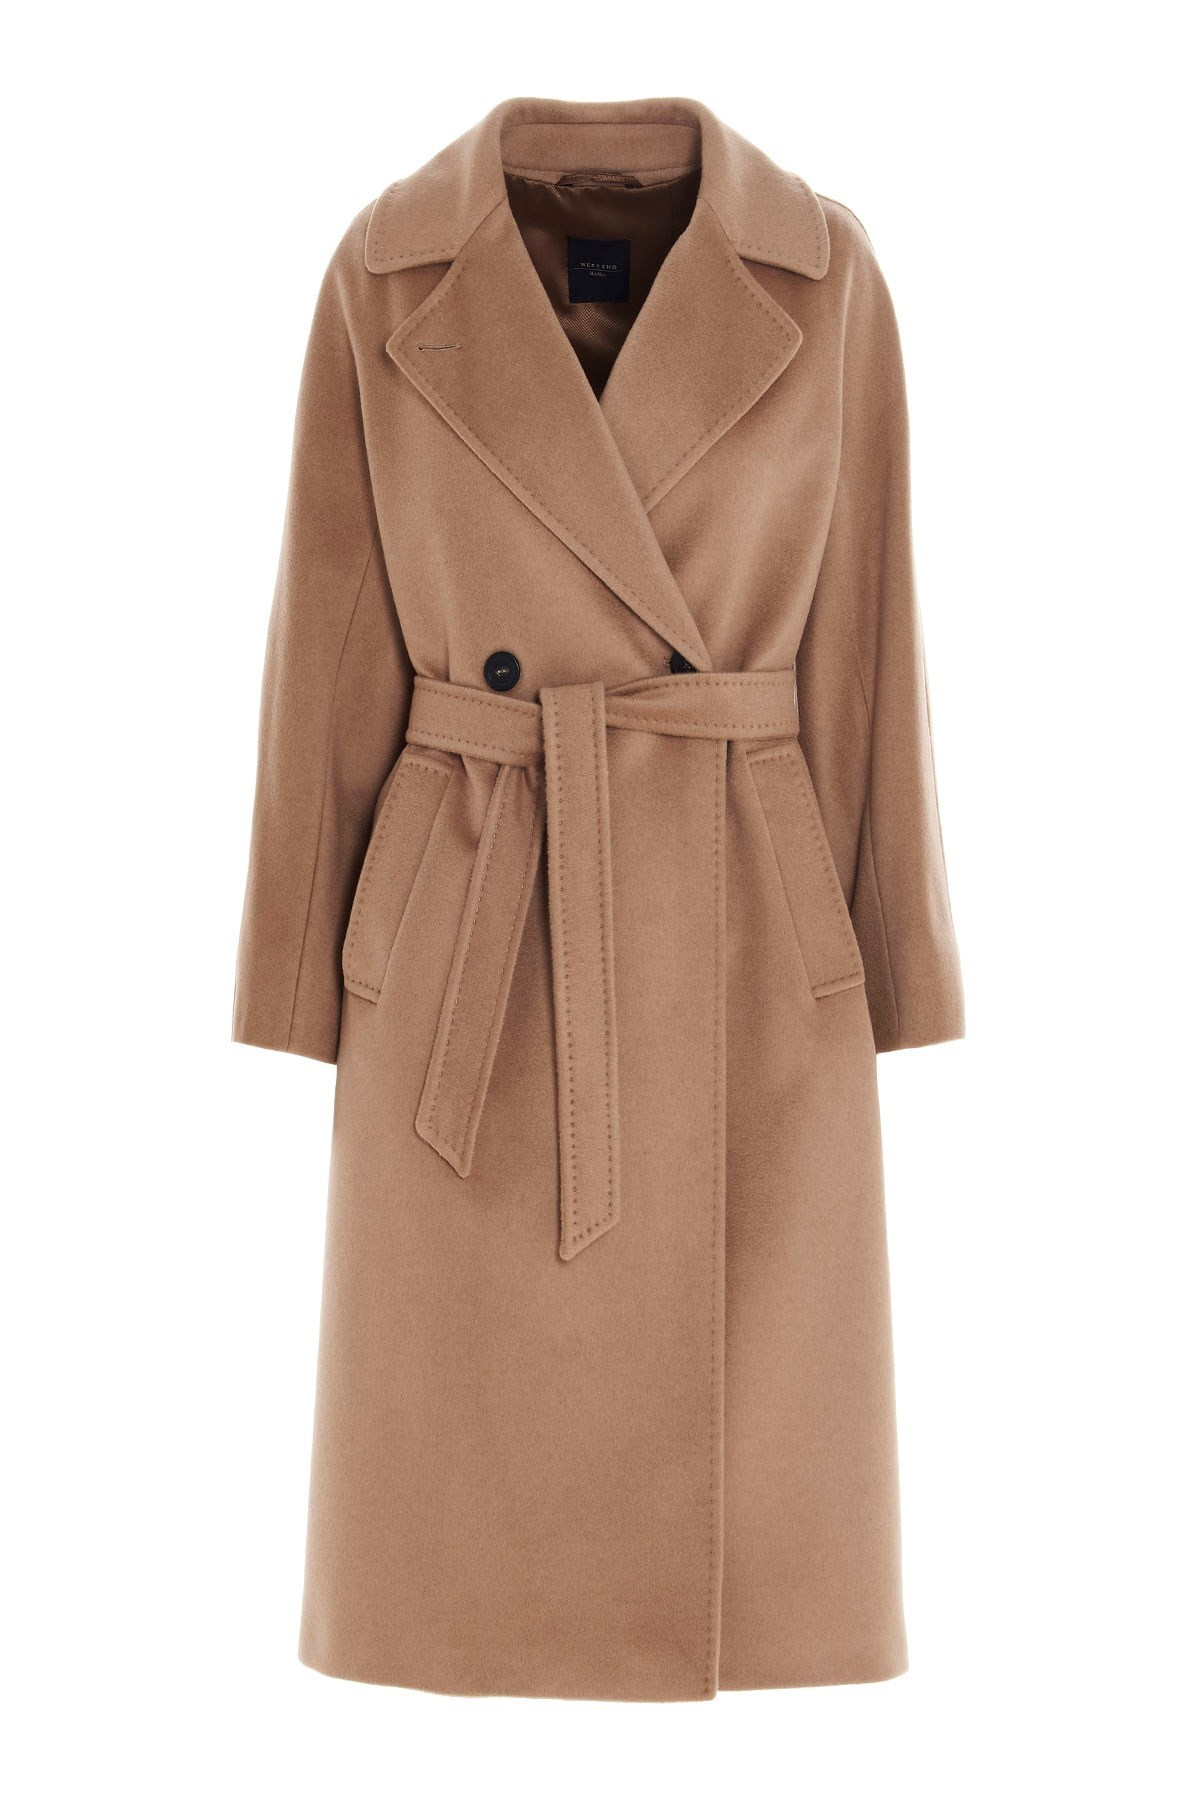 shop weekend max mara clothing